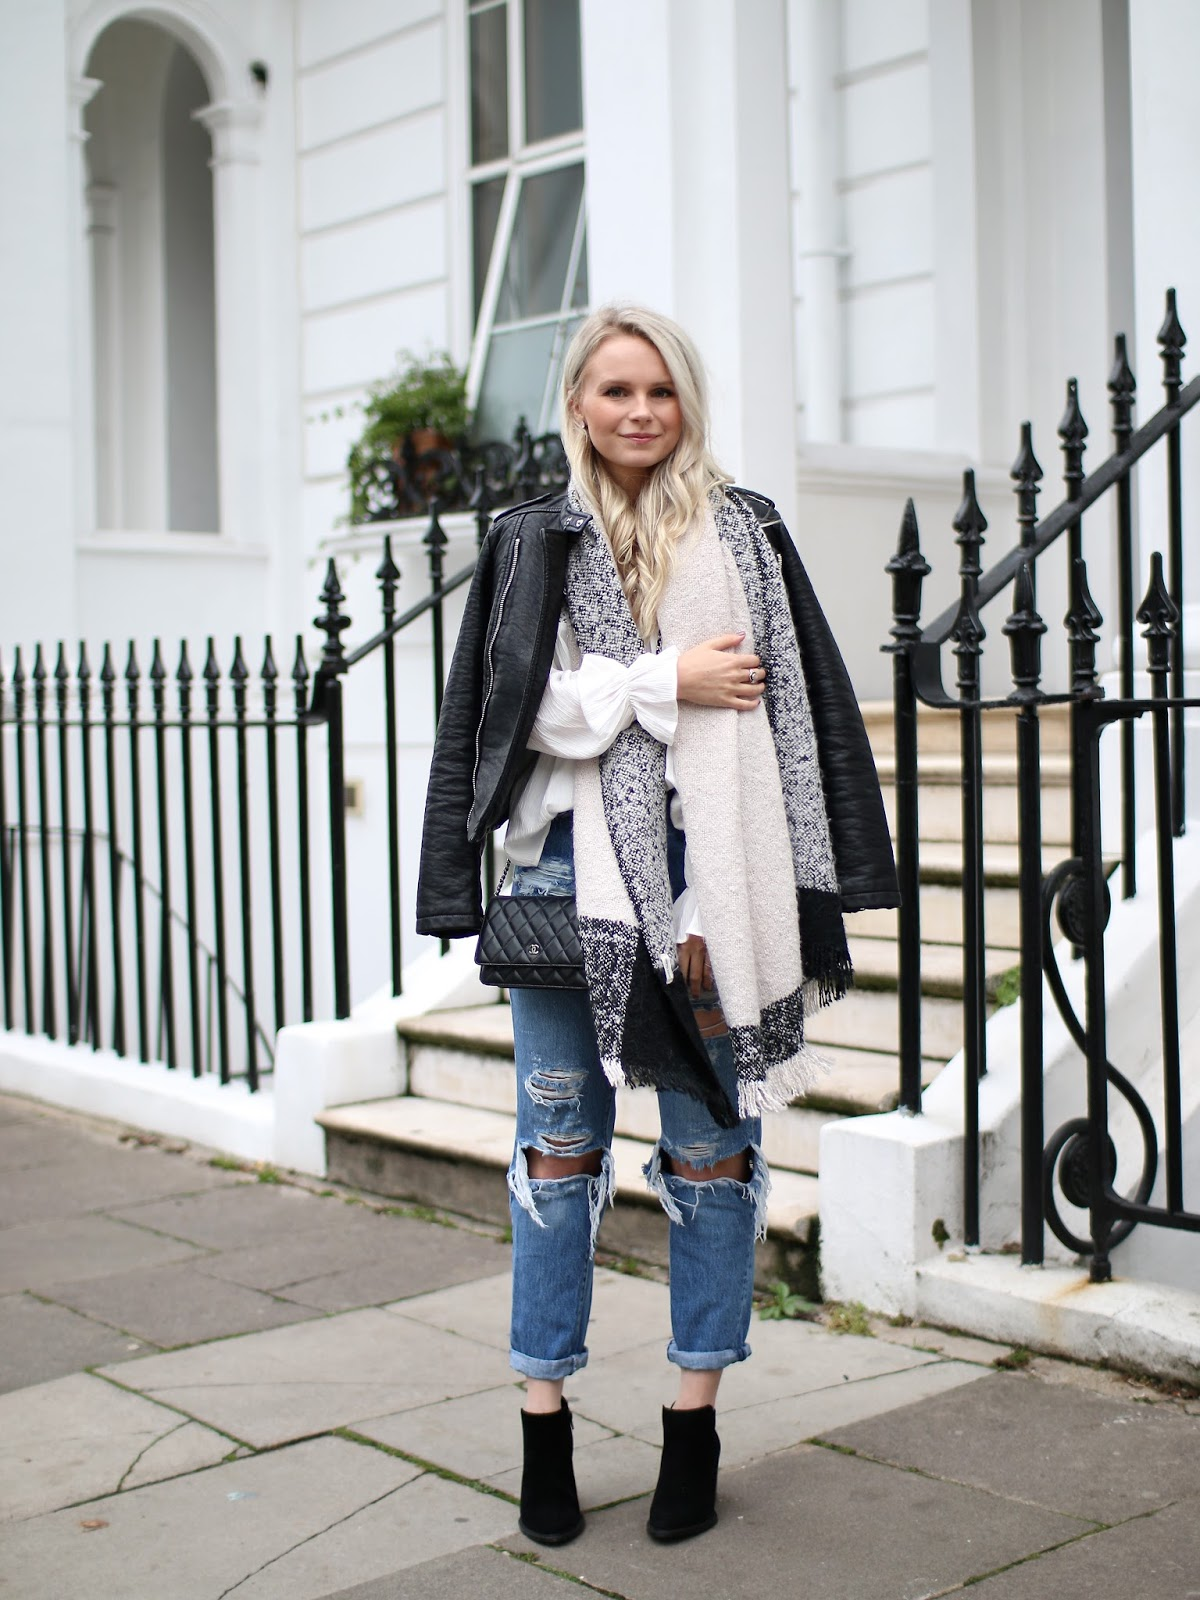 a blogger demonstrates how to style a casual and simple outfit for a cold day in london